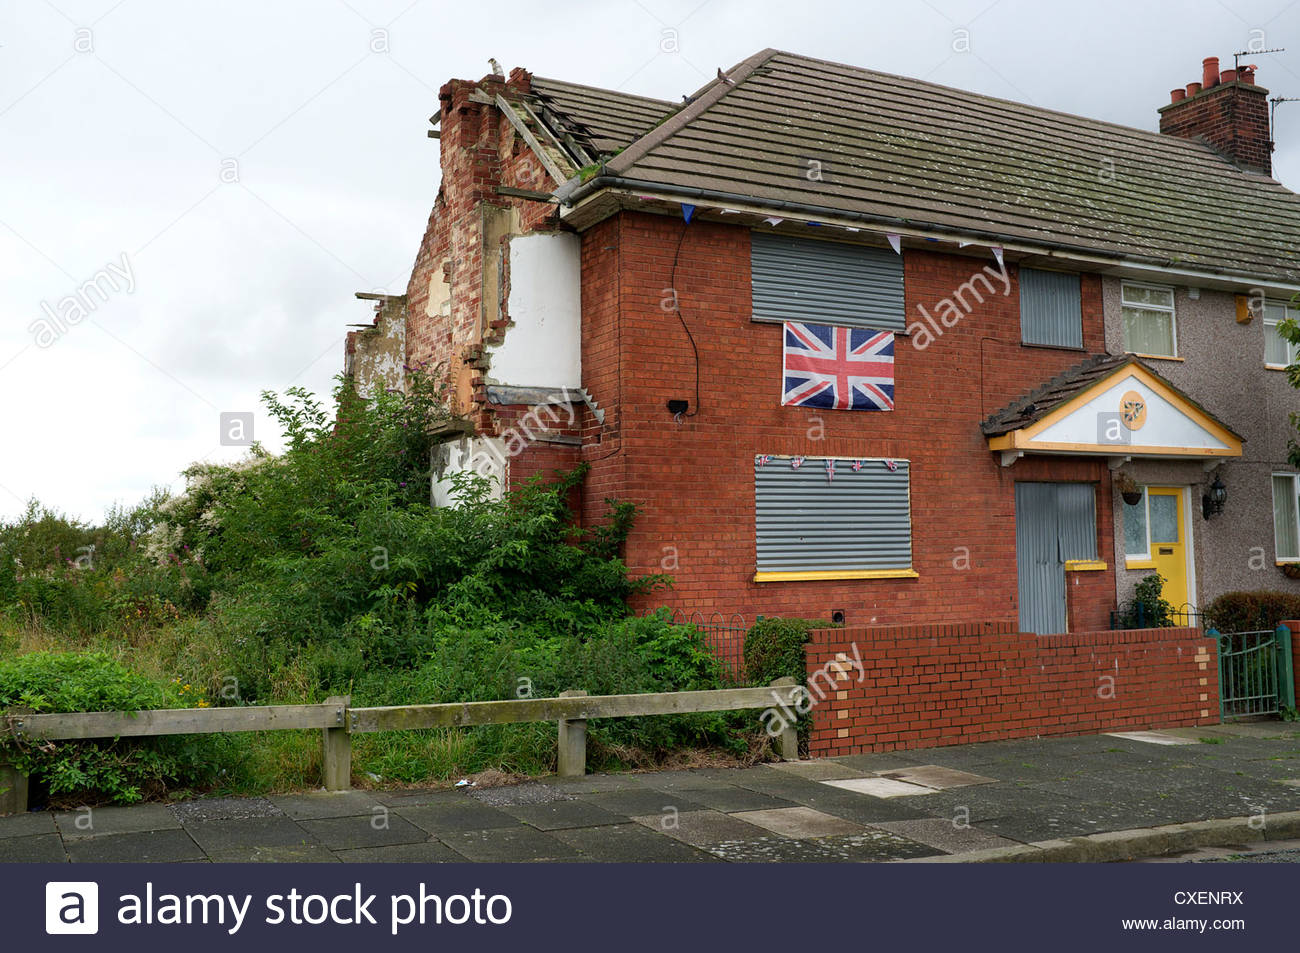 Derelict house next to an occupied home, no.8, in Ilchester Road in Birkenhead, Wirral, UK. - Stock Image